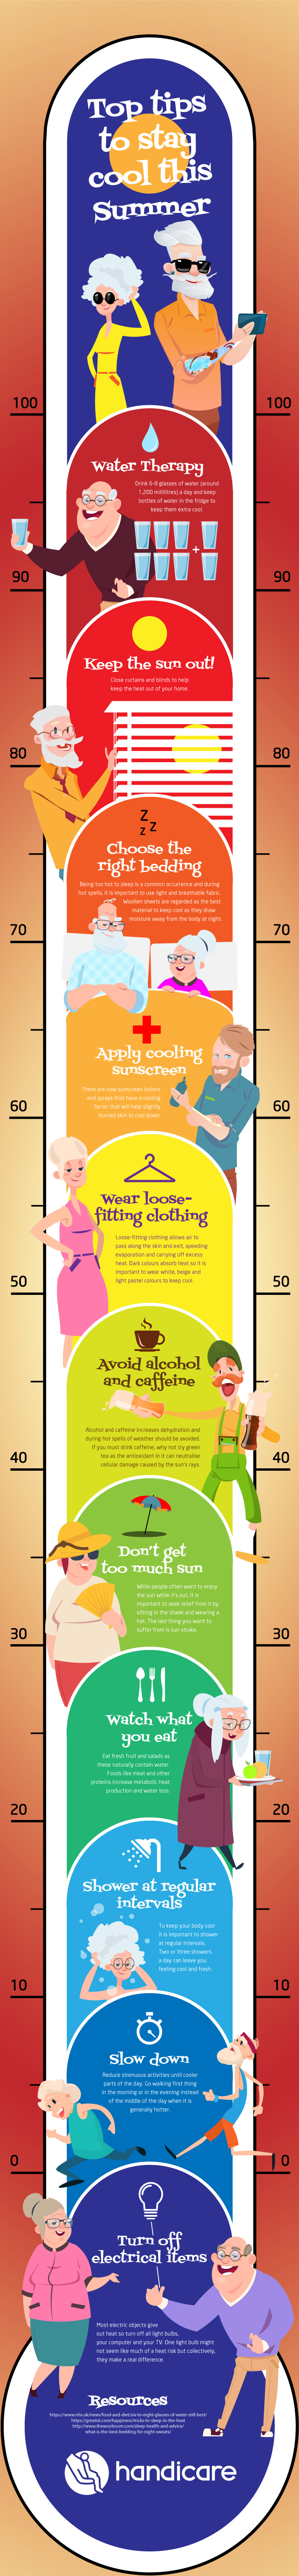 Tips for staying cool for older people